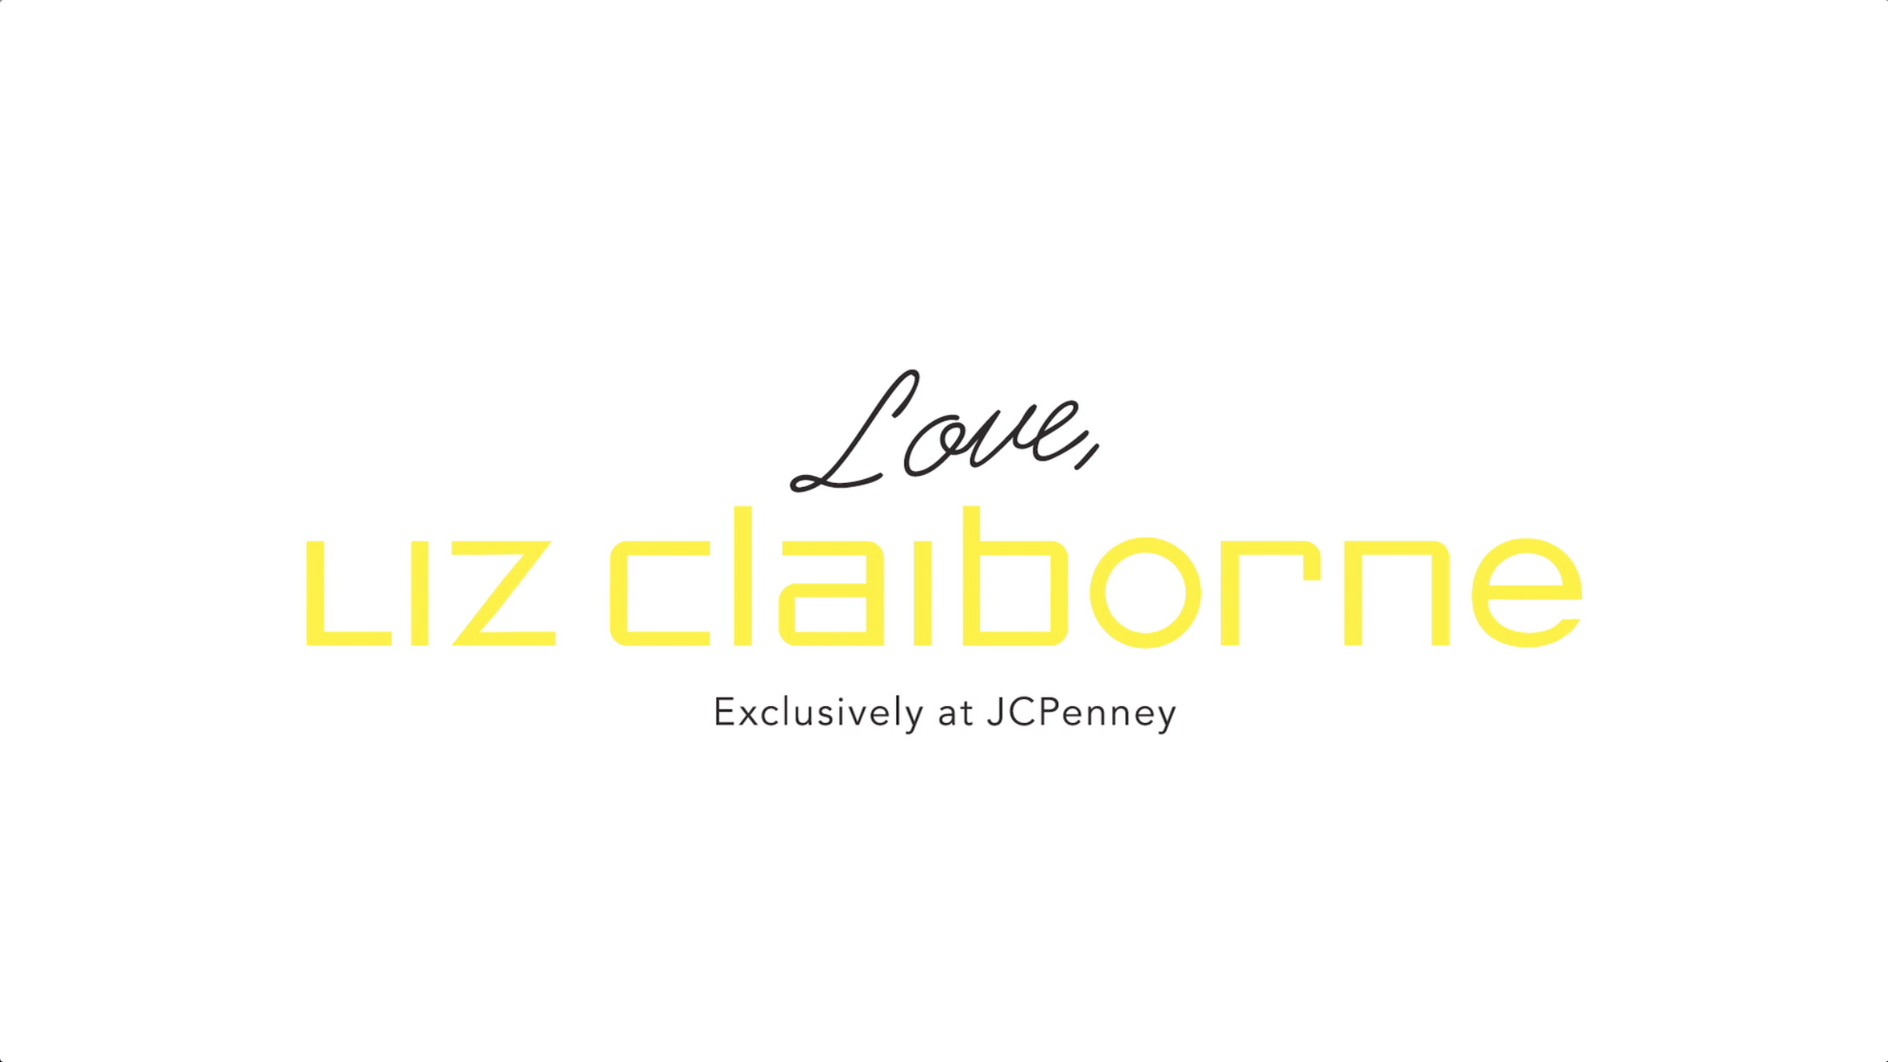 LIZ CLAIBORNE VIDEO